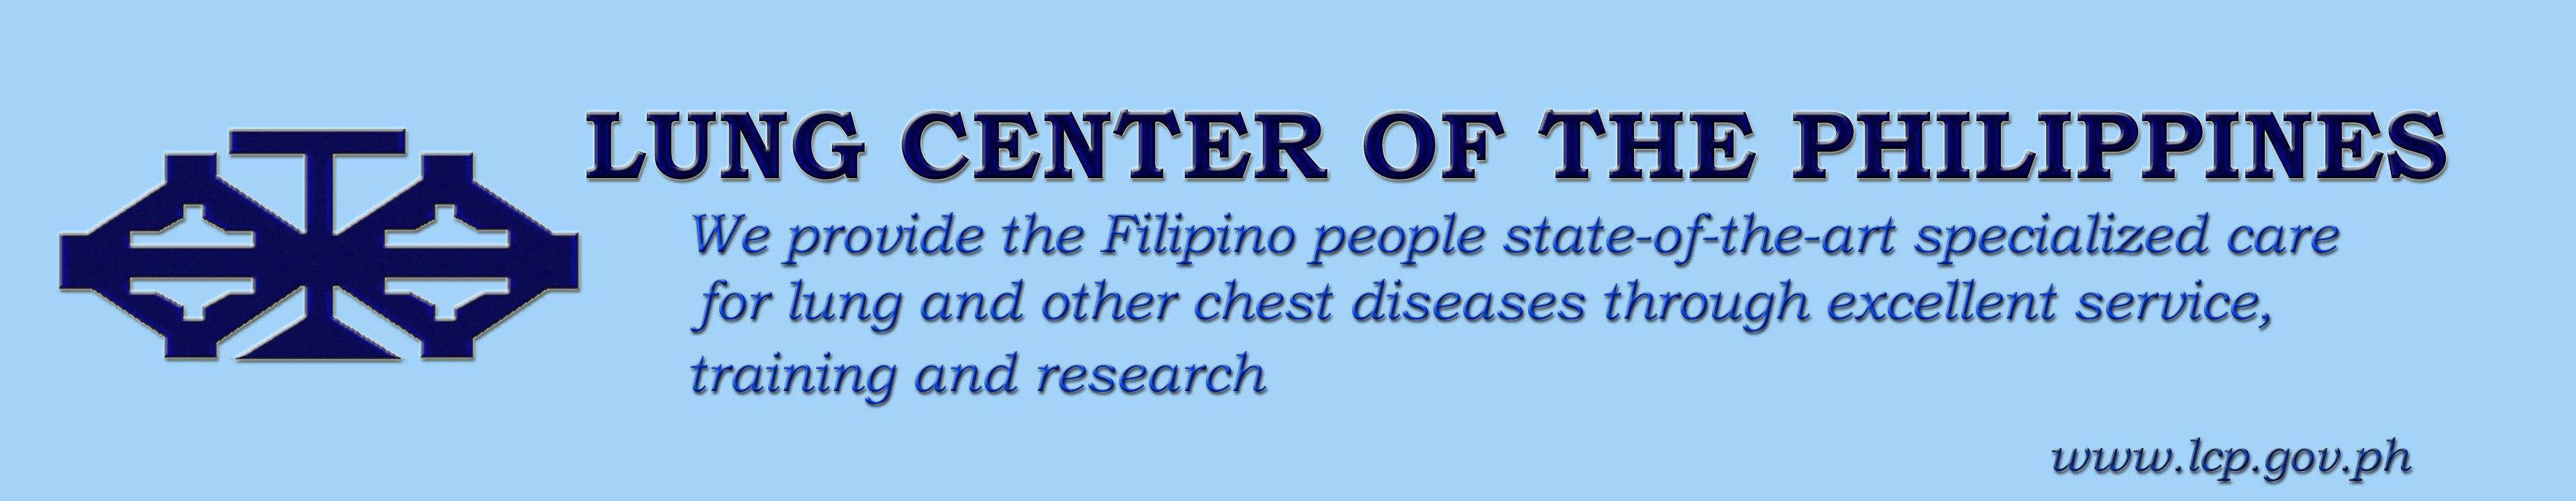 Lung Center of the Philippines - Room No. 1110